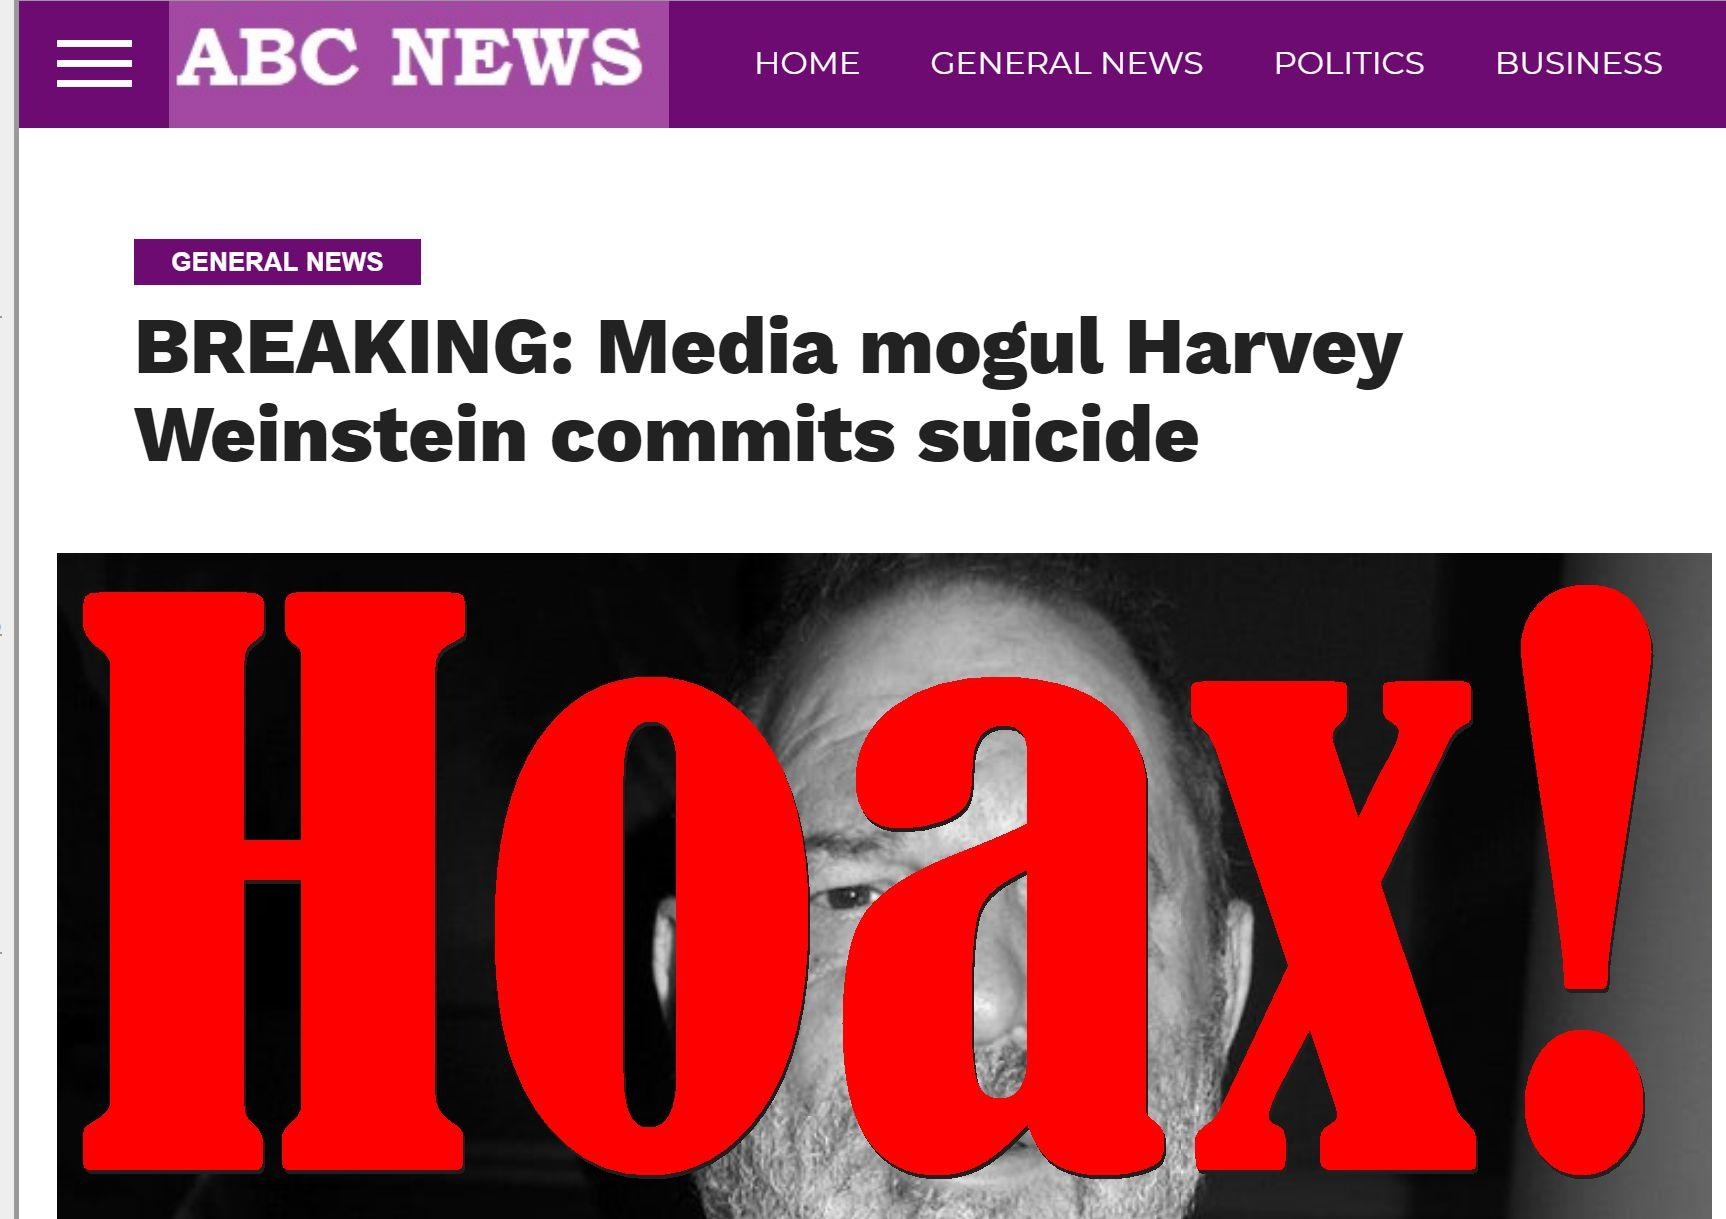 Fake News: Media Mogul Harvey Weinstein Did NOT Commit Suicide in Arizona